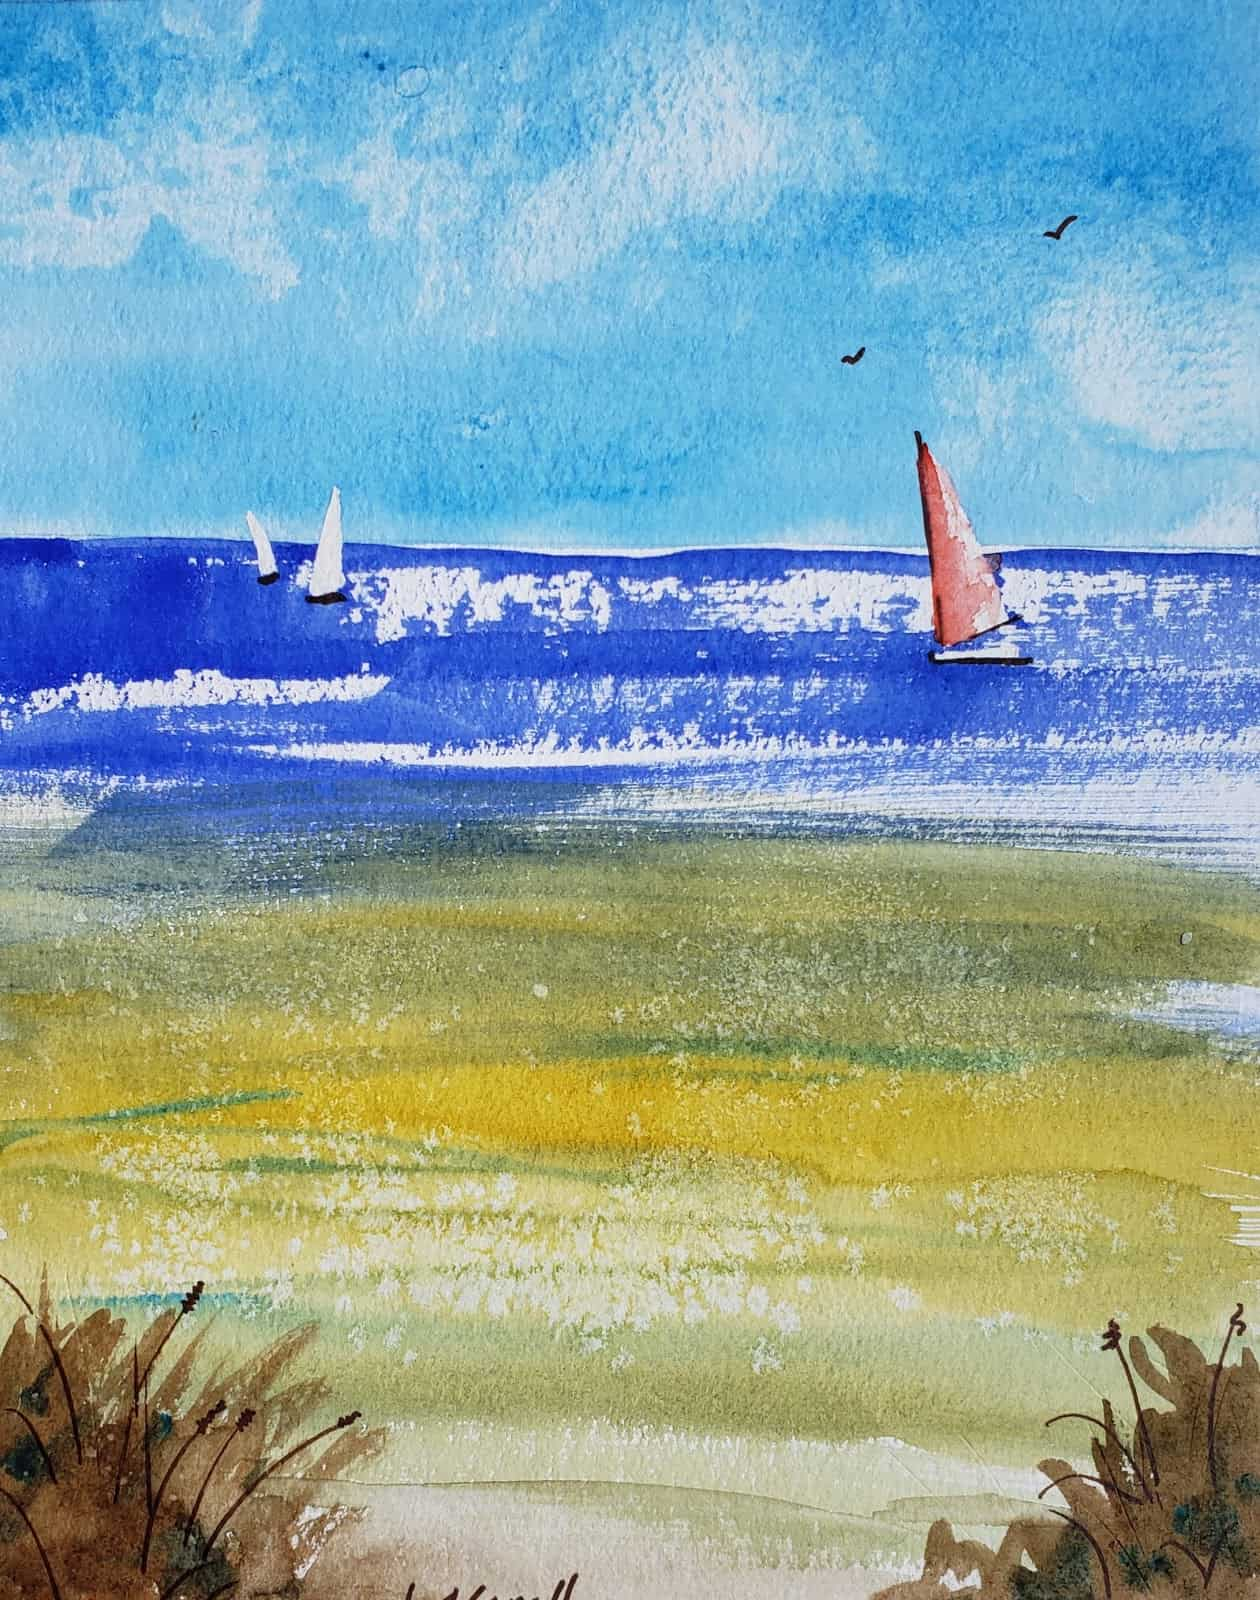 Beginner seascape watercolor with three sailboats on coldpress paper using several texturing techniques